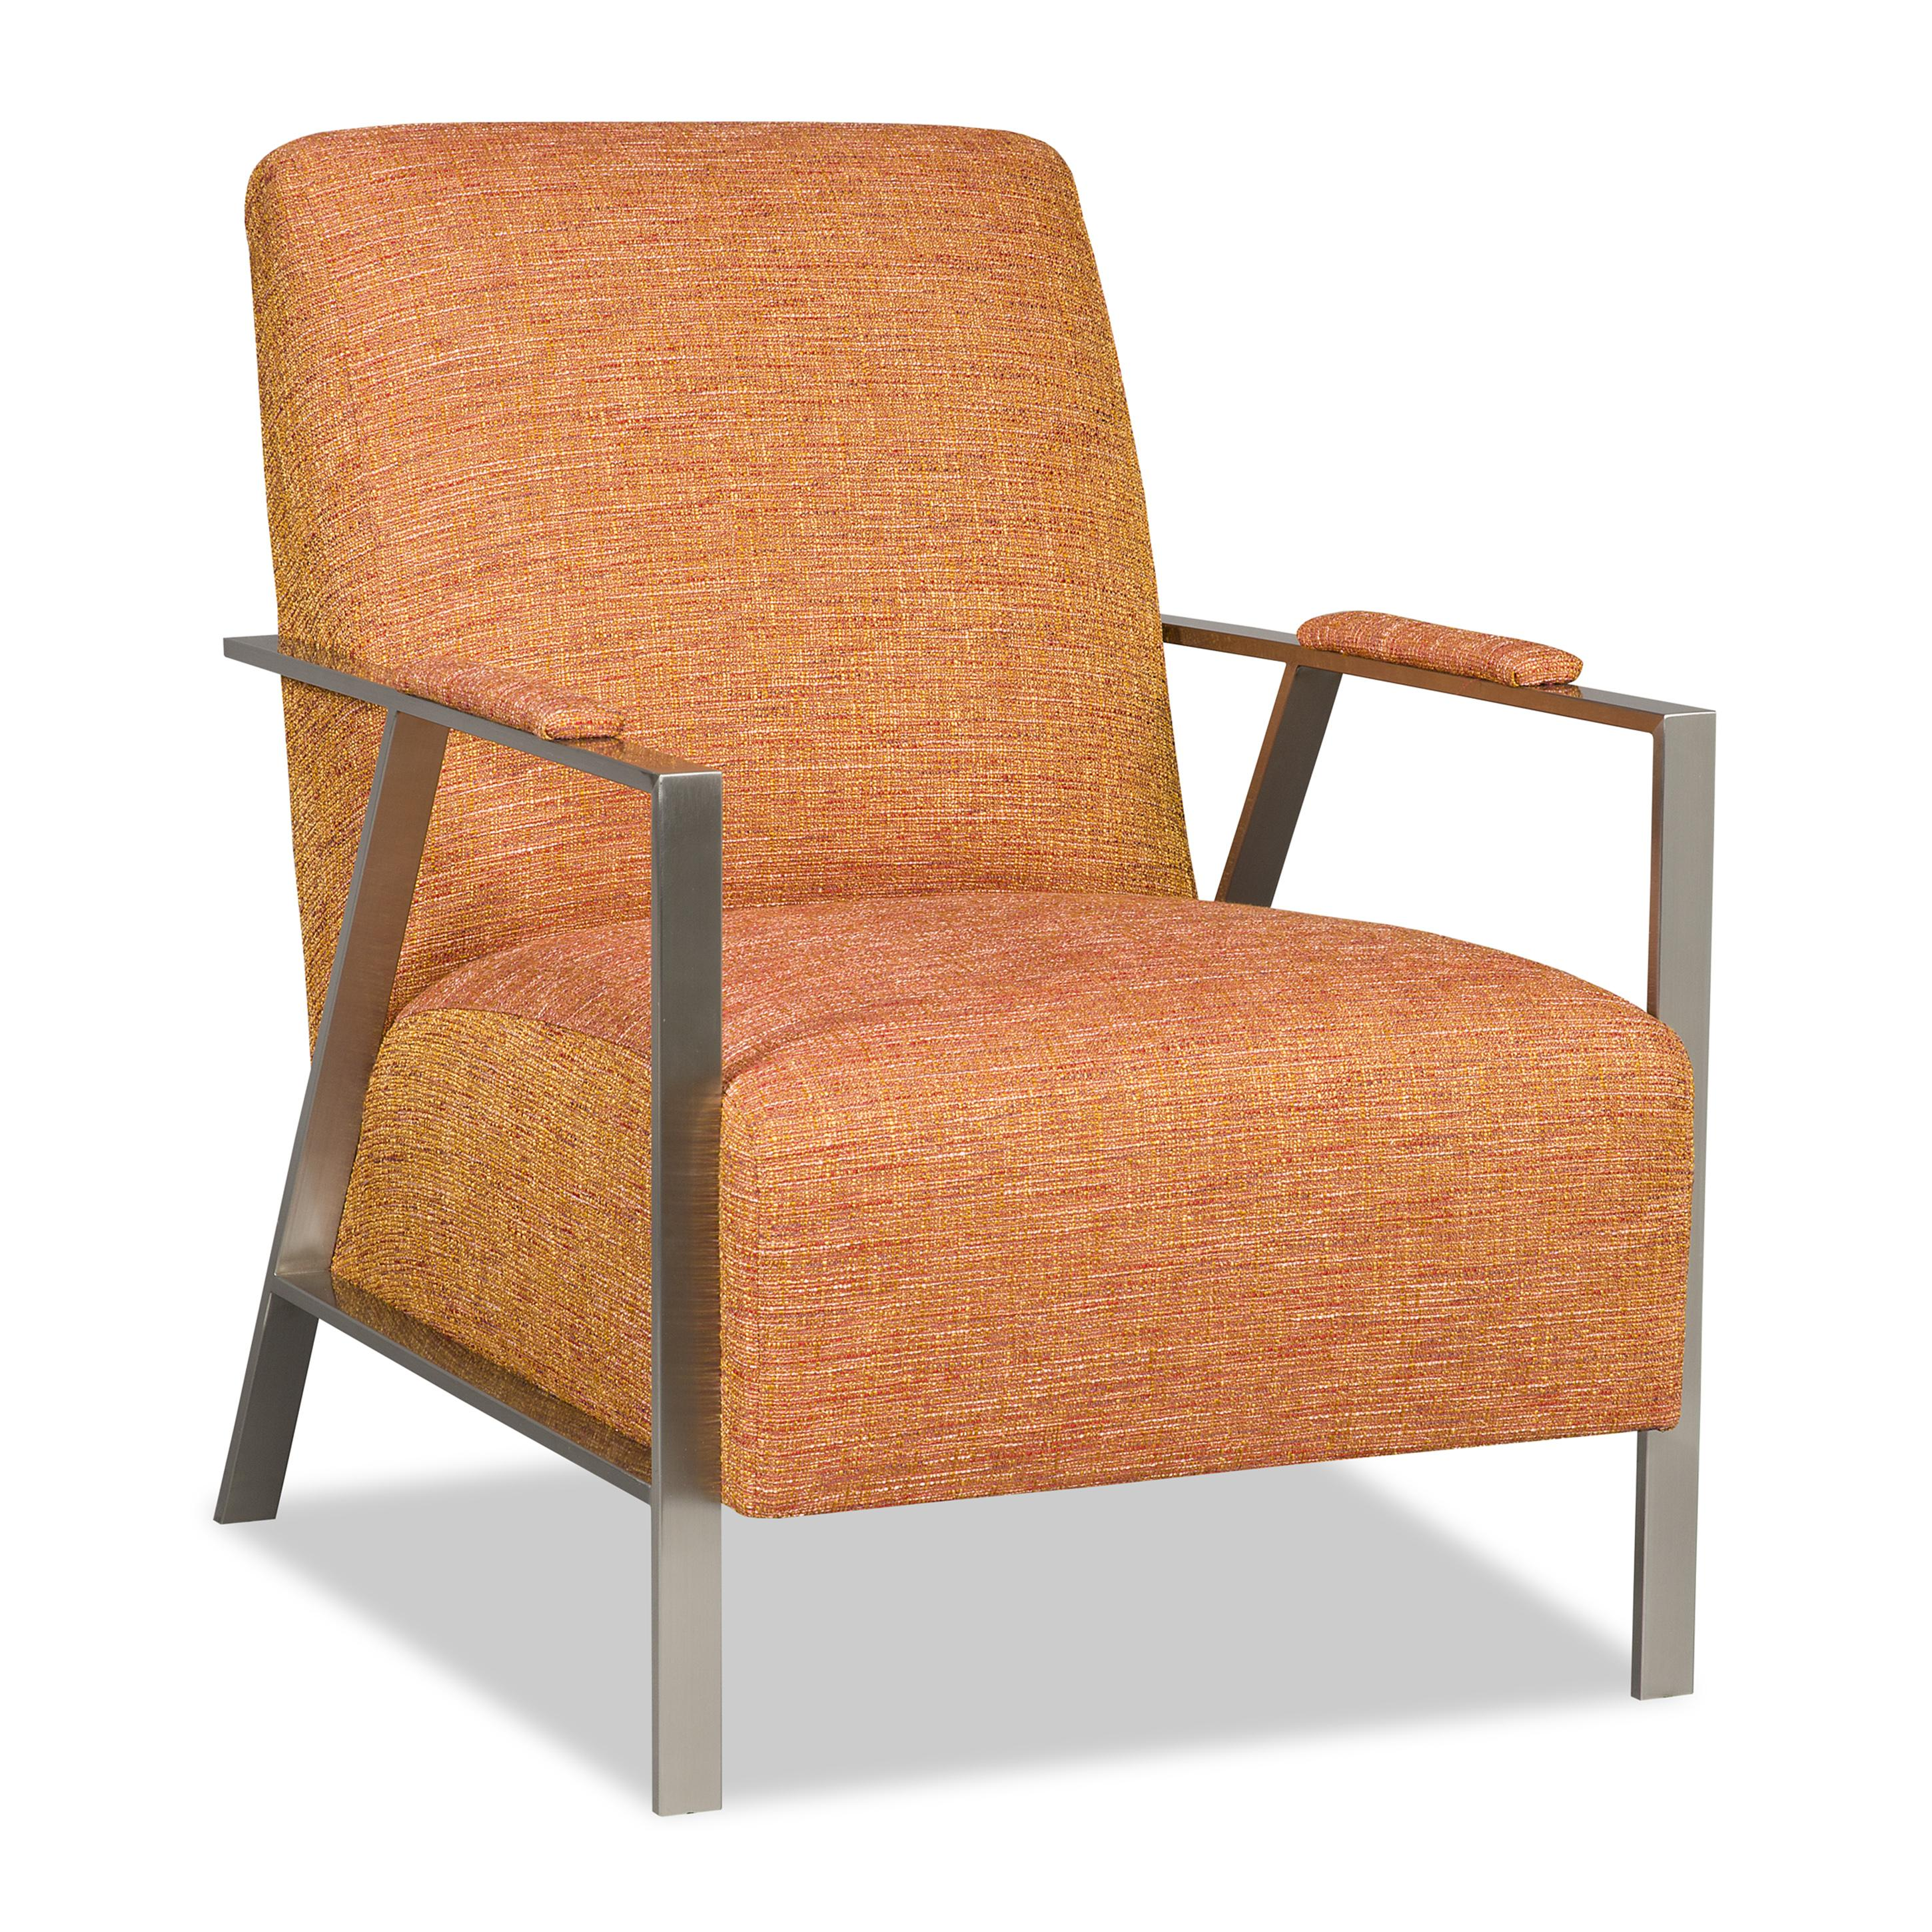 Sam Moore Nora Mid Century Modern Accent Chair with Stainless